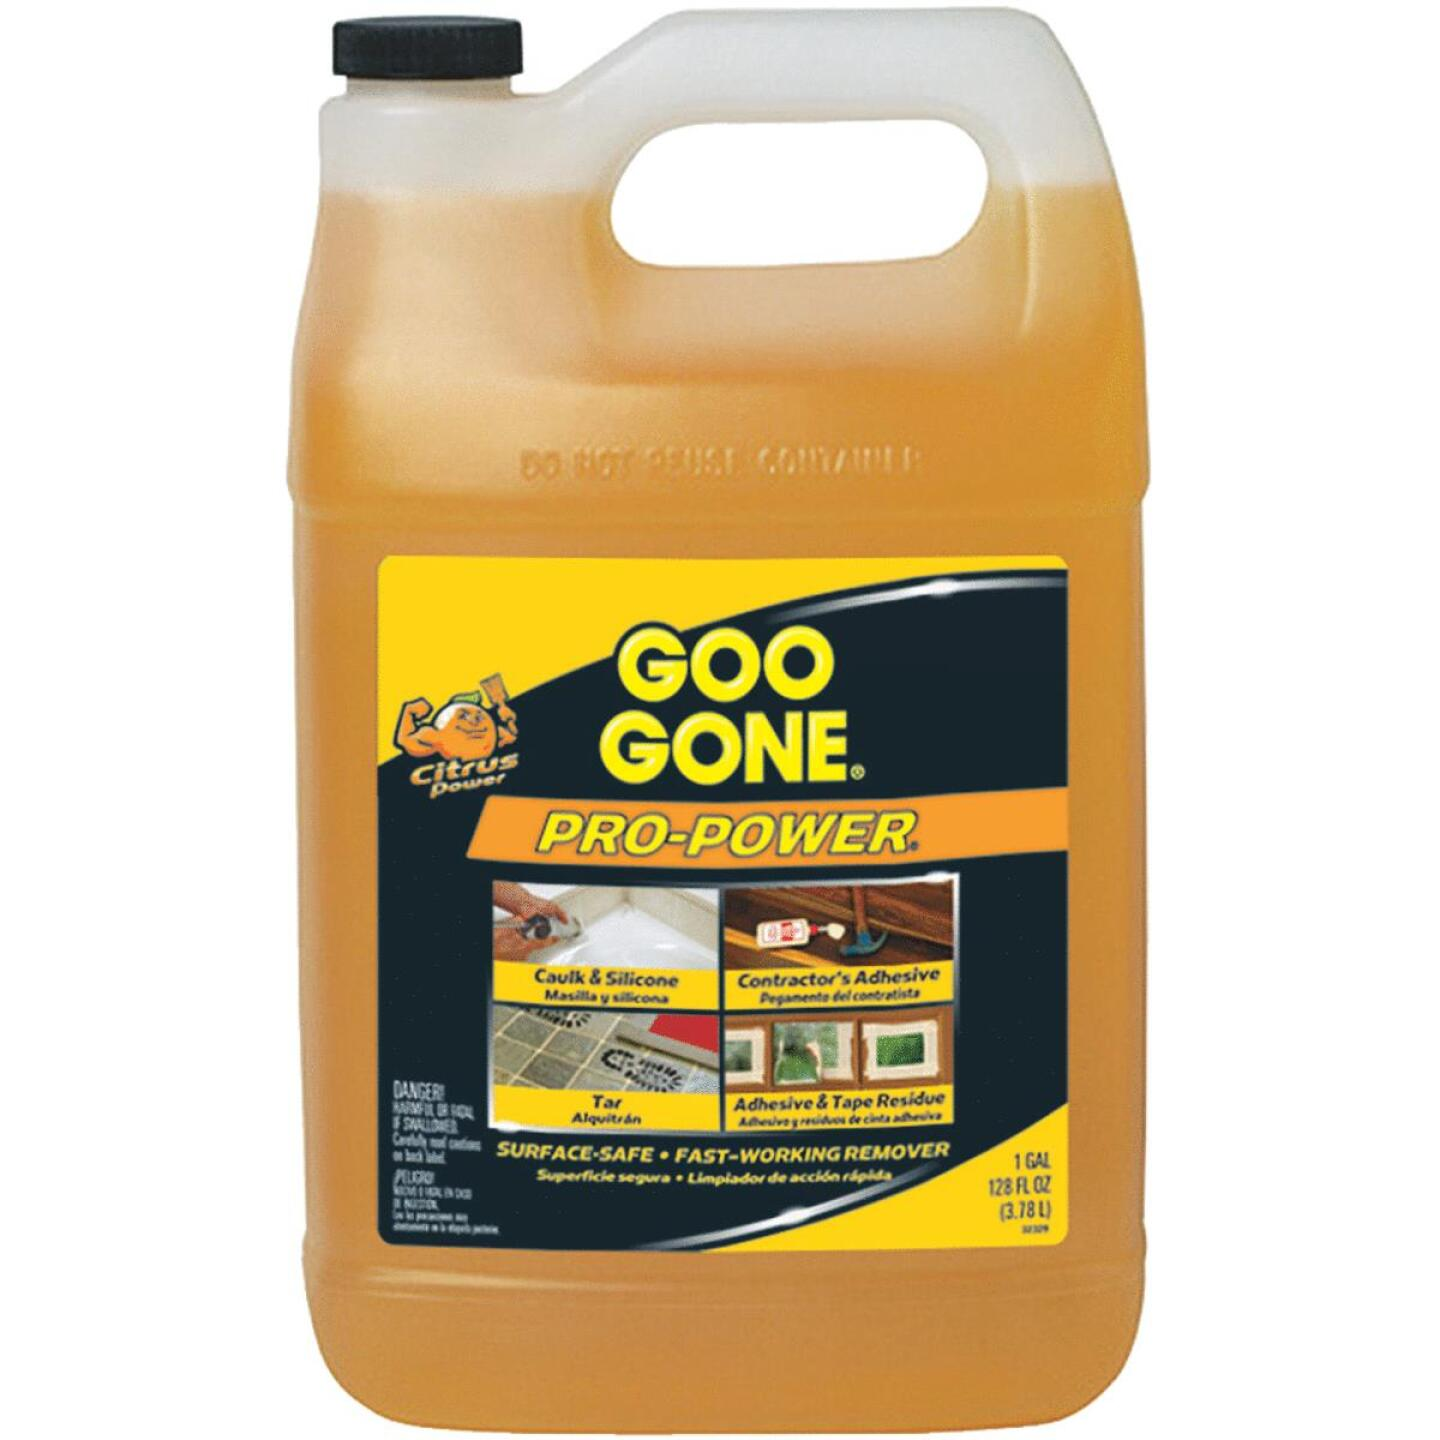 Goo Gone 1 Gal. Pro-Power Adhesive Remover Image 16